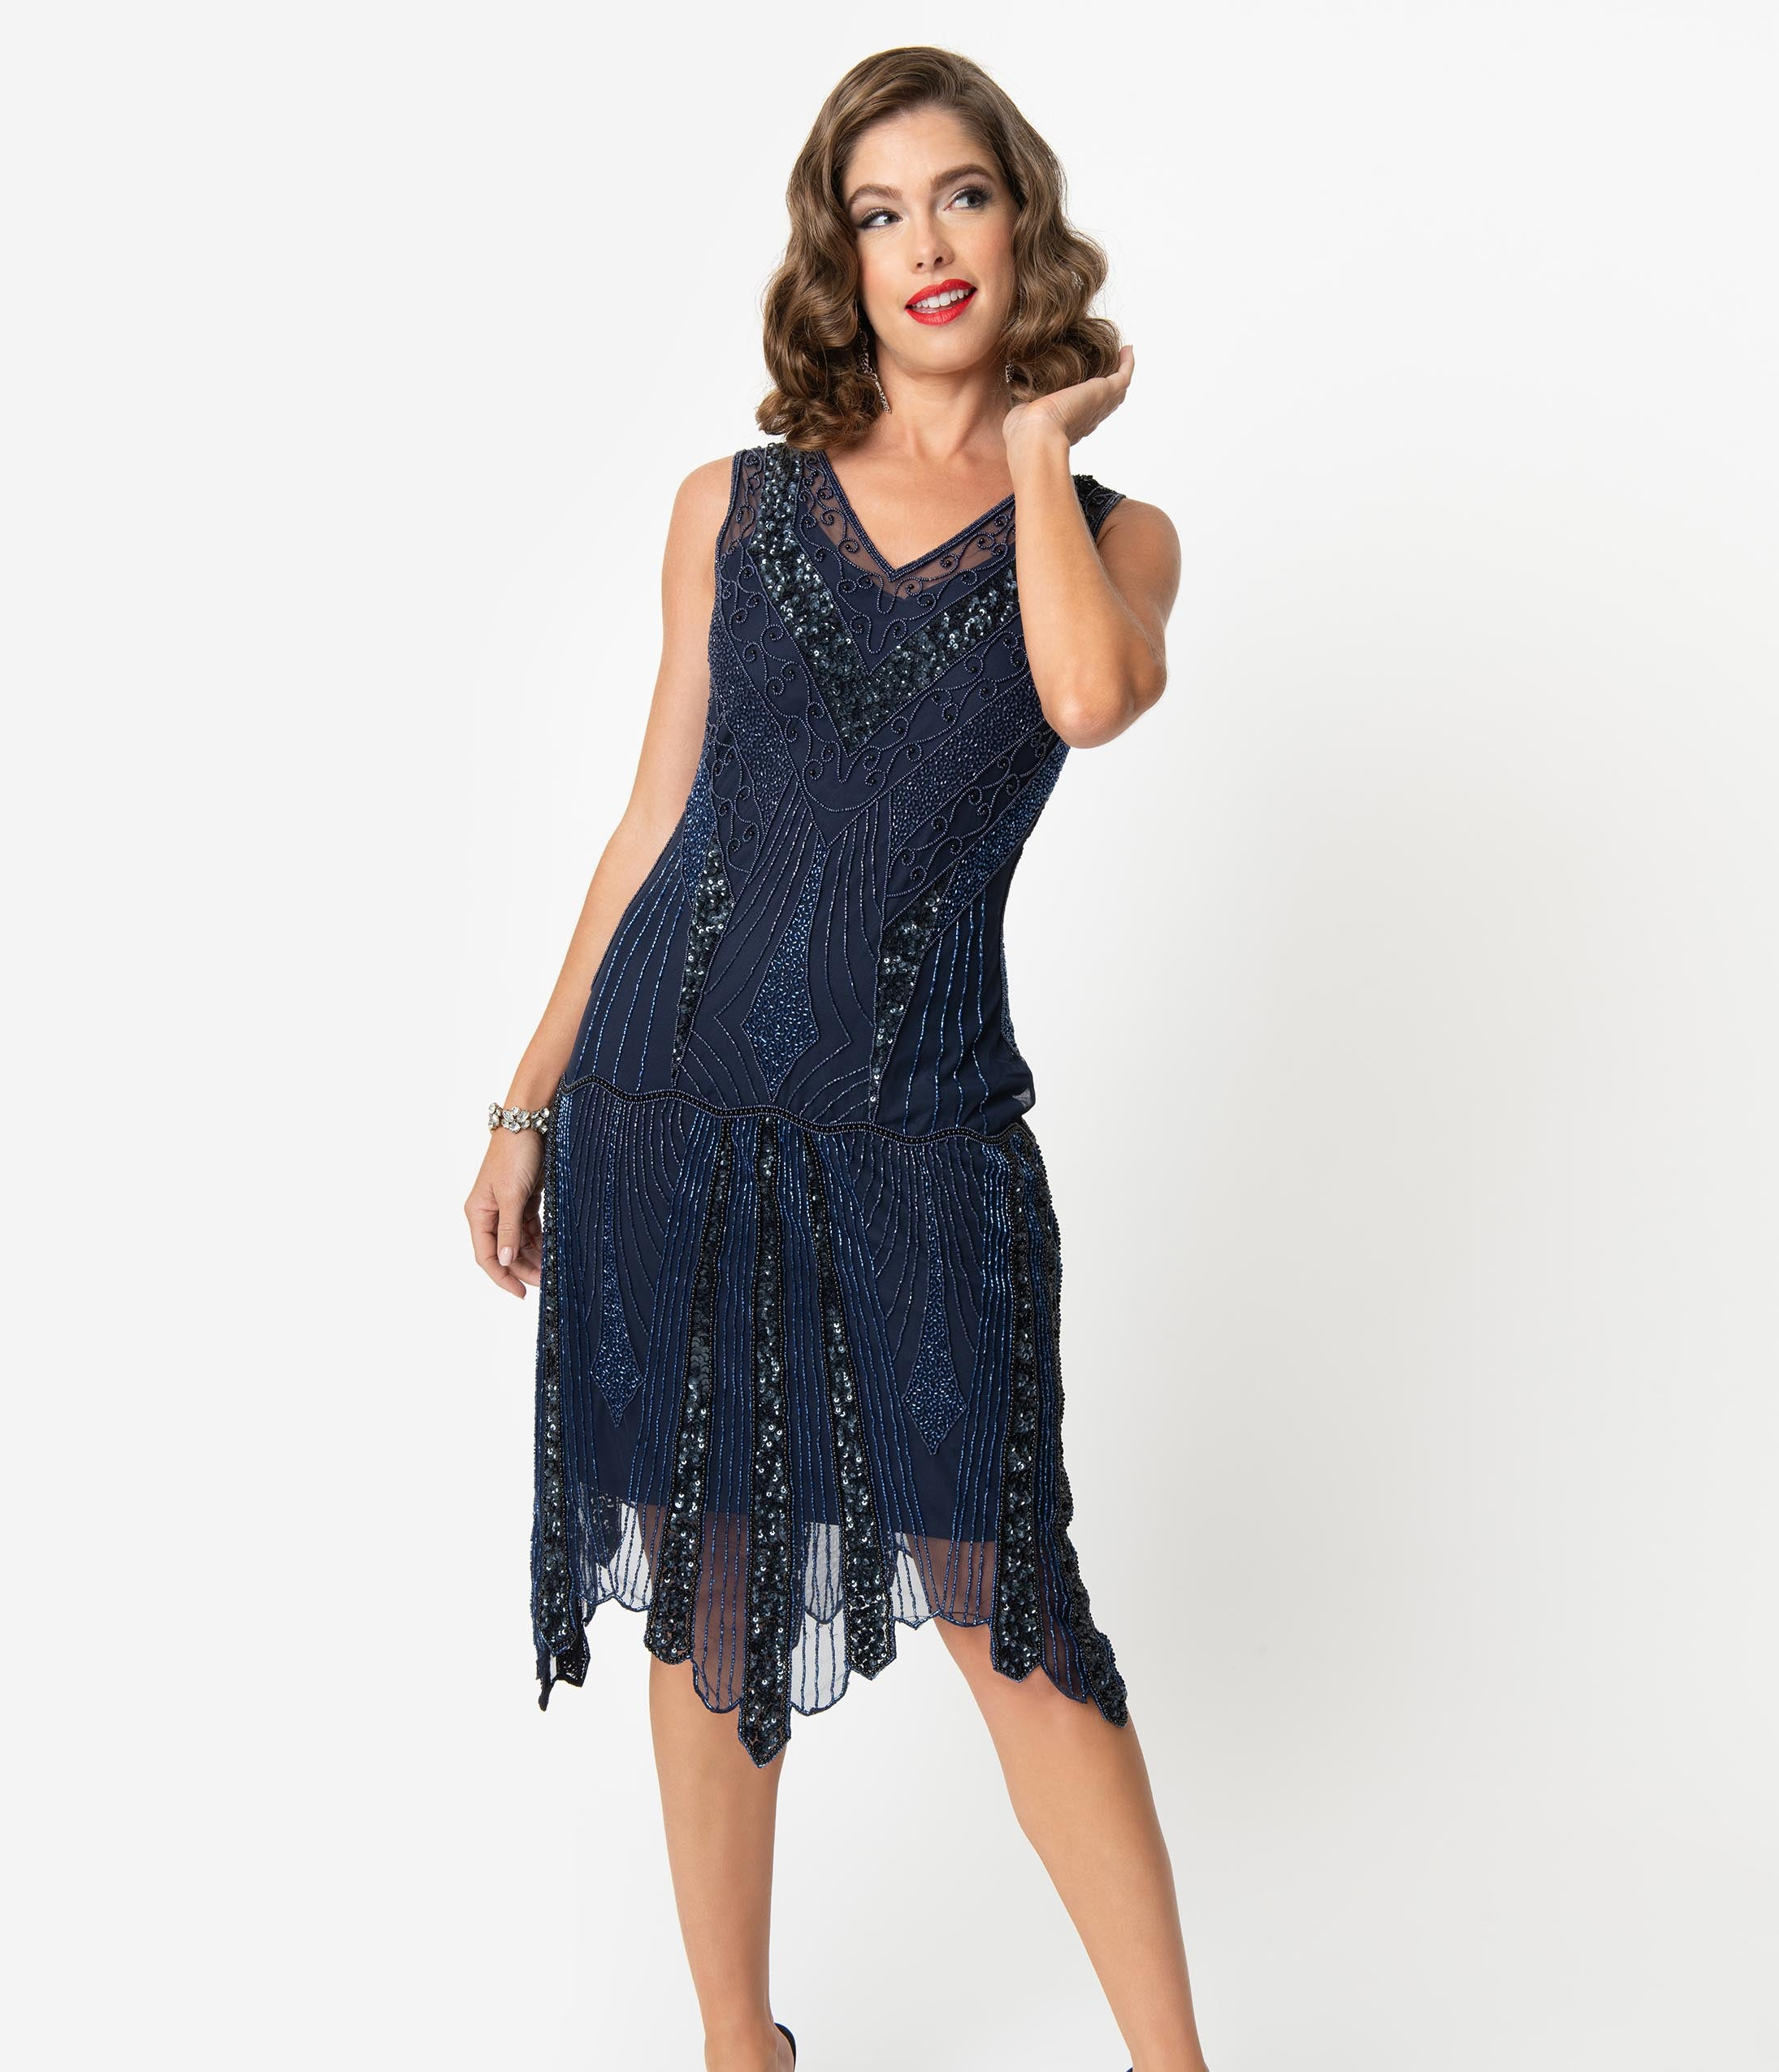 Great Gatsby Dress – Great Gatsby Dresses for Sale 1920S Style Navy Blue Beaded Deco Sleeveless Renee Flapper Dress $178.00 AT vintagedancer.com